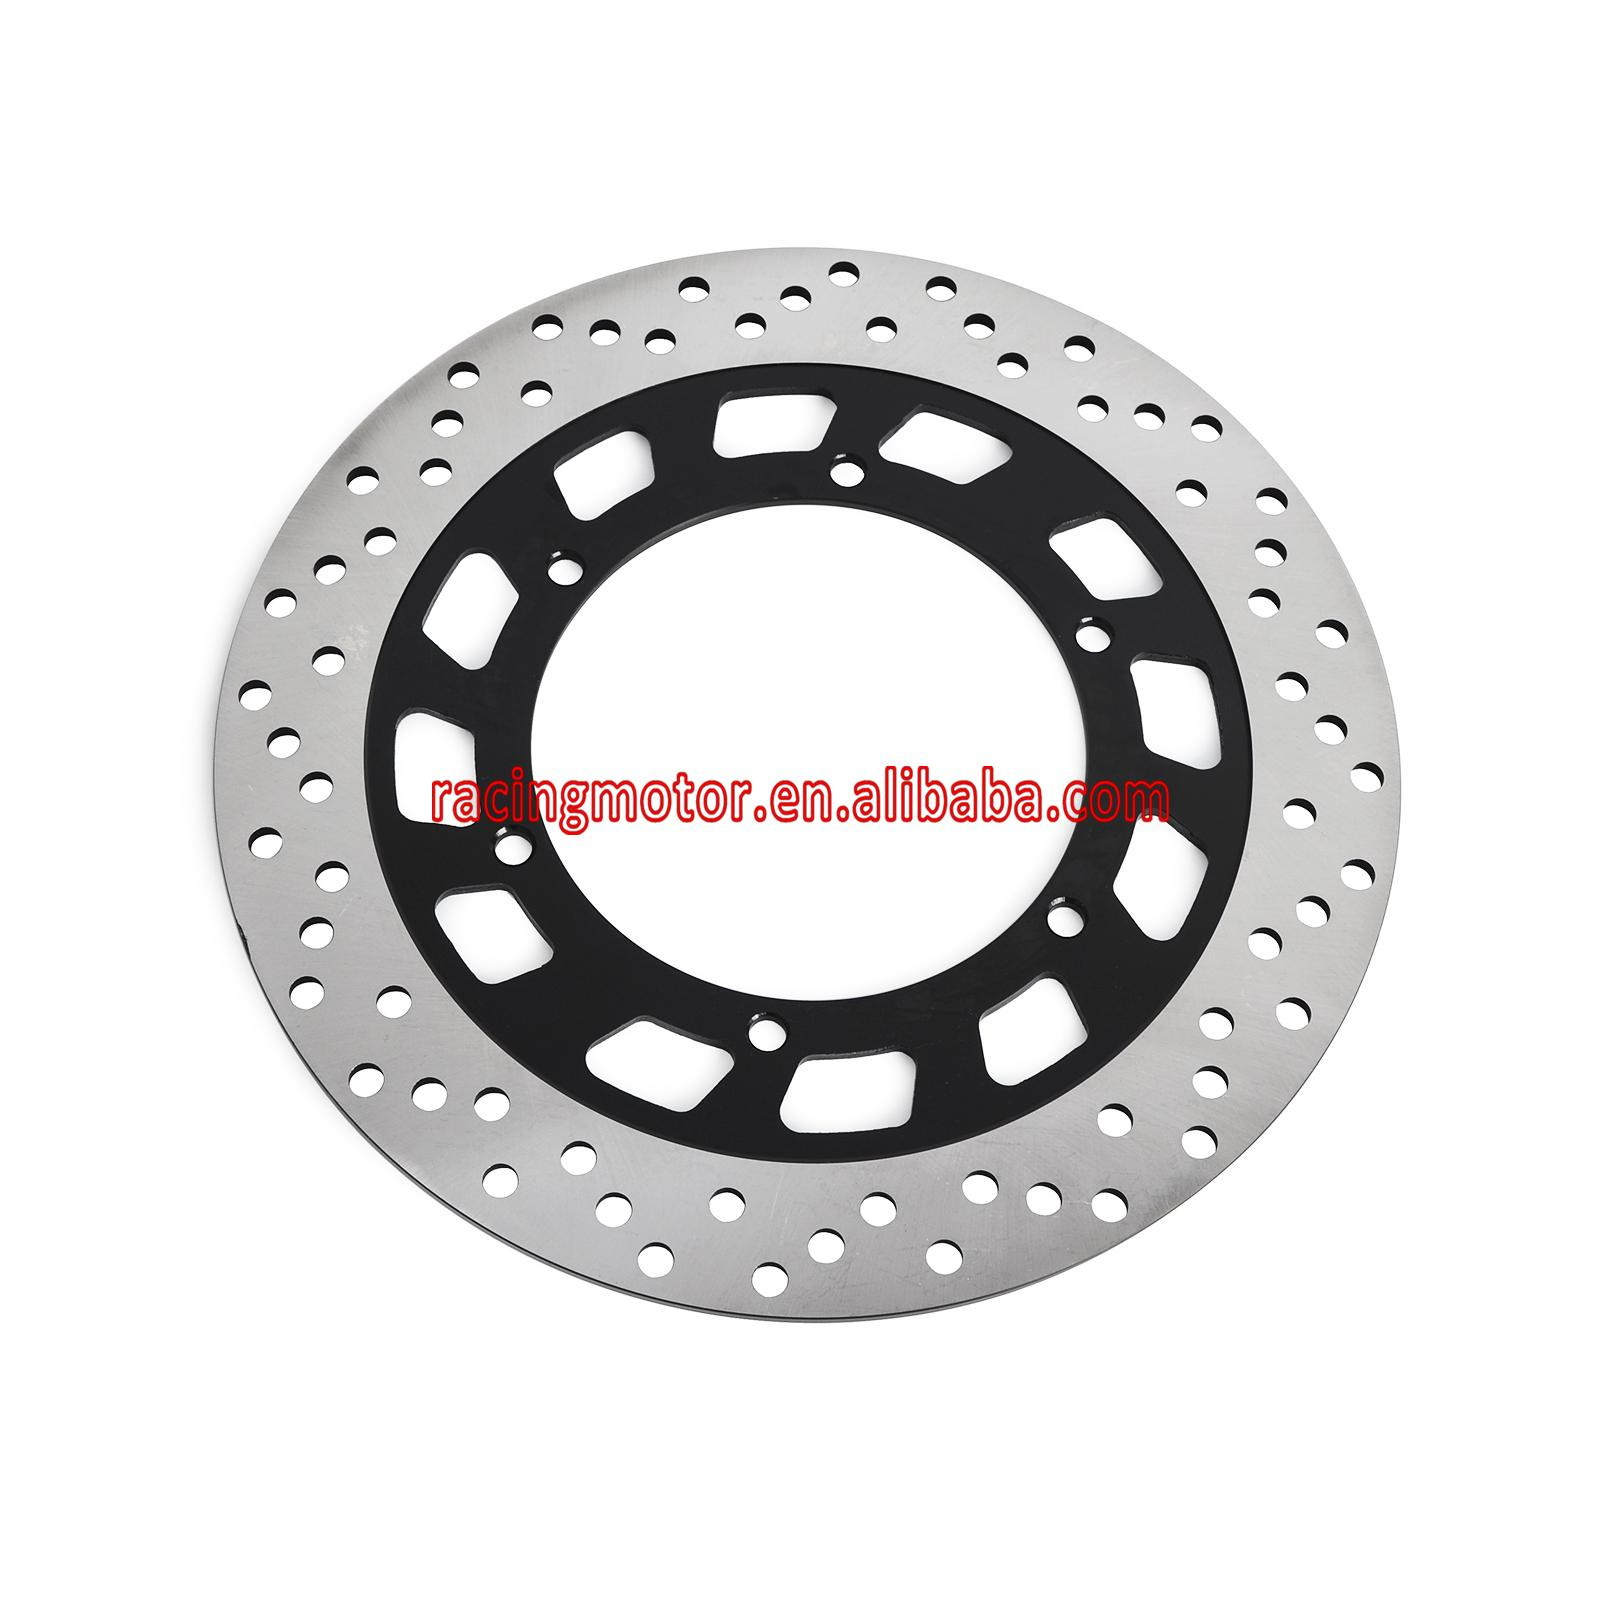 Motorcycle Rear Brake Disc Rotor For Yamaha GTS1000 1993-1996 FJ1100 1984-1985 FJ1200 1986-1995 FJ 1100 1200 NEW for ktm 250 sx 144sx 125exc sx 250sx f 200xc w exc 520 sx exc 505 sx f motocross cnc pivot racing dirt bike clutch brake levers